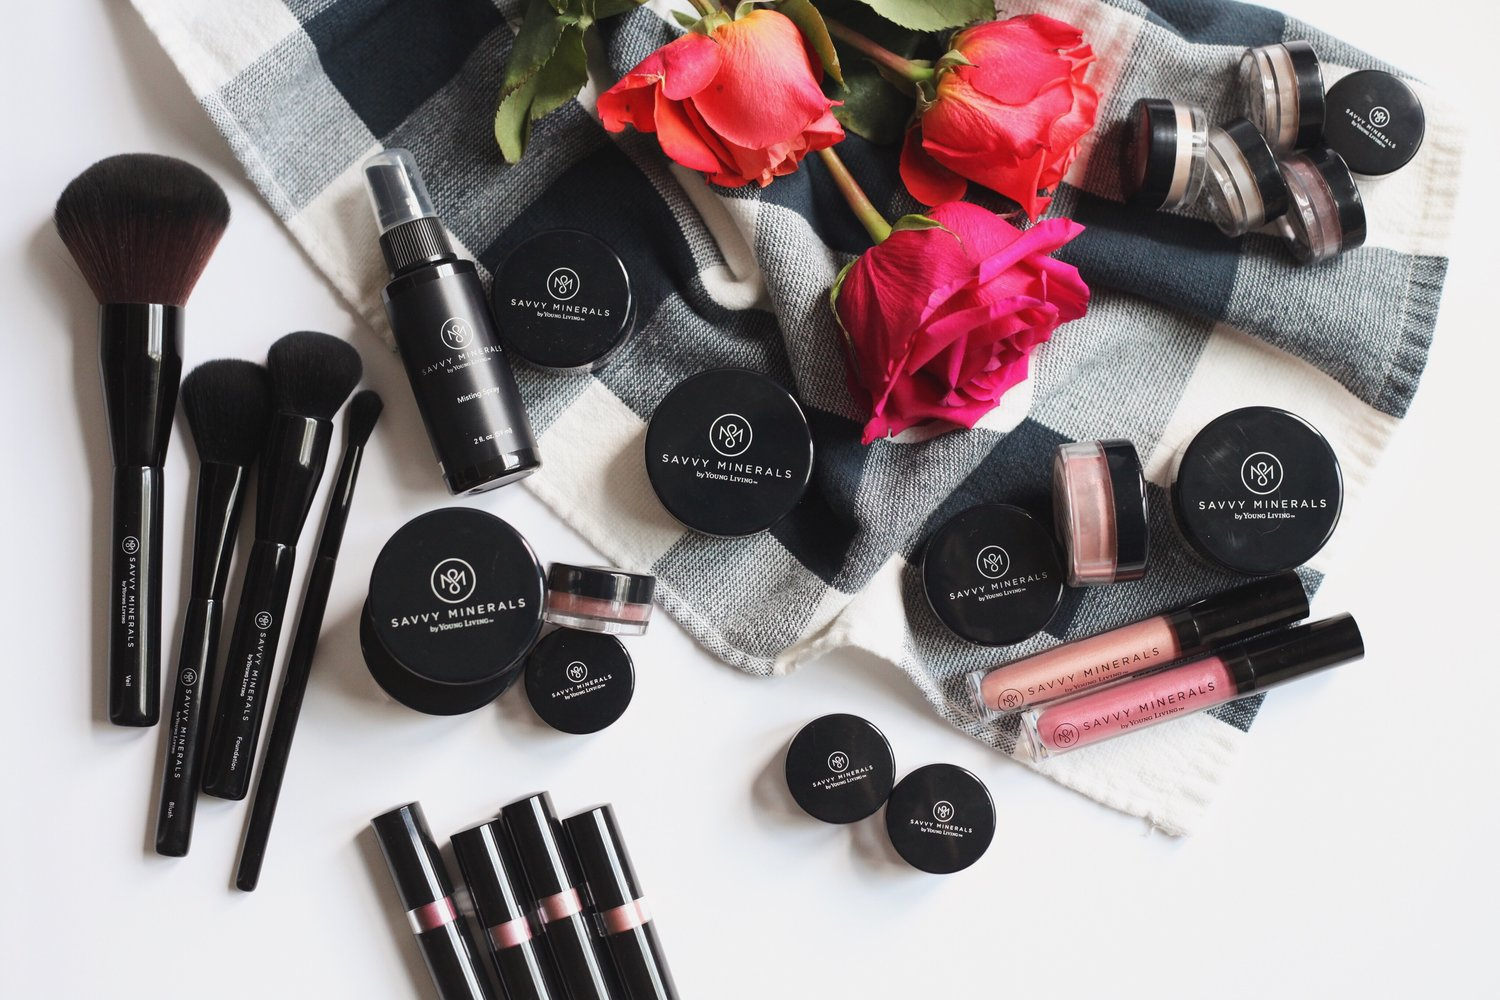 Savvy is one of the cleanest makeup lines on the market!